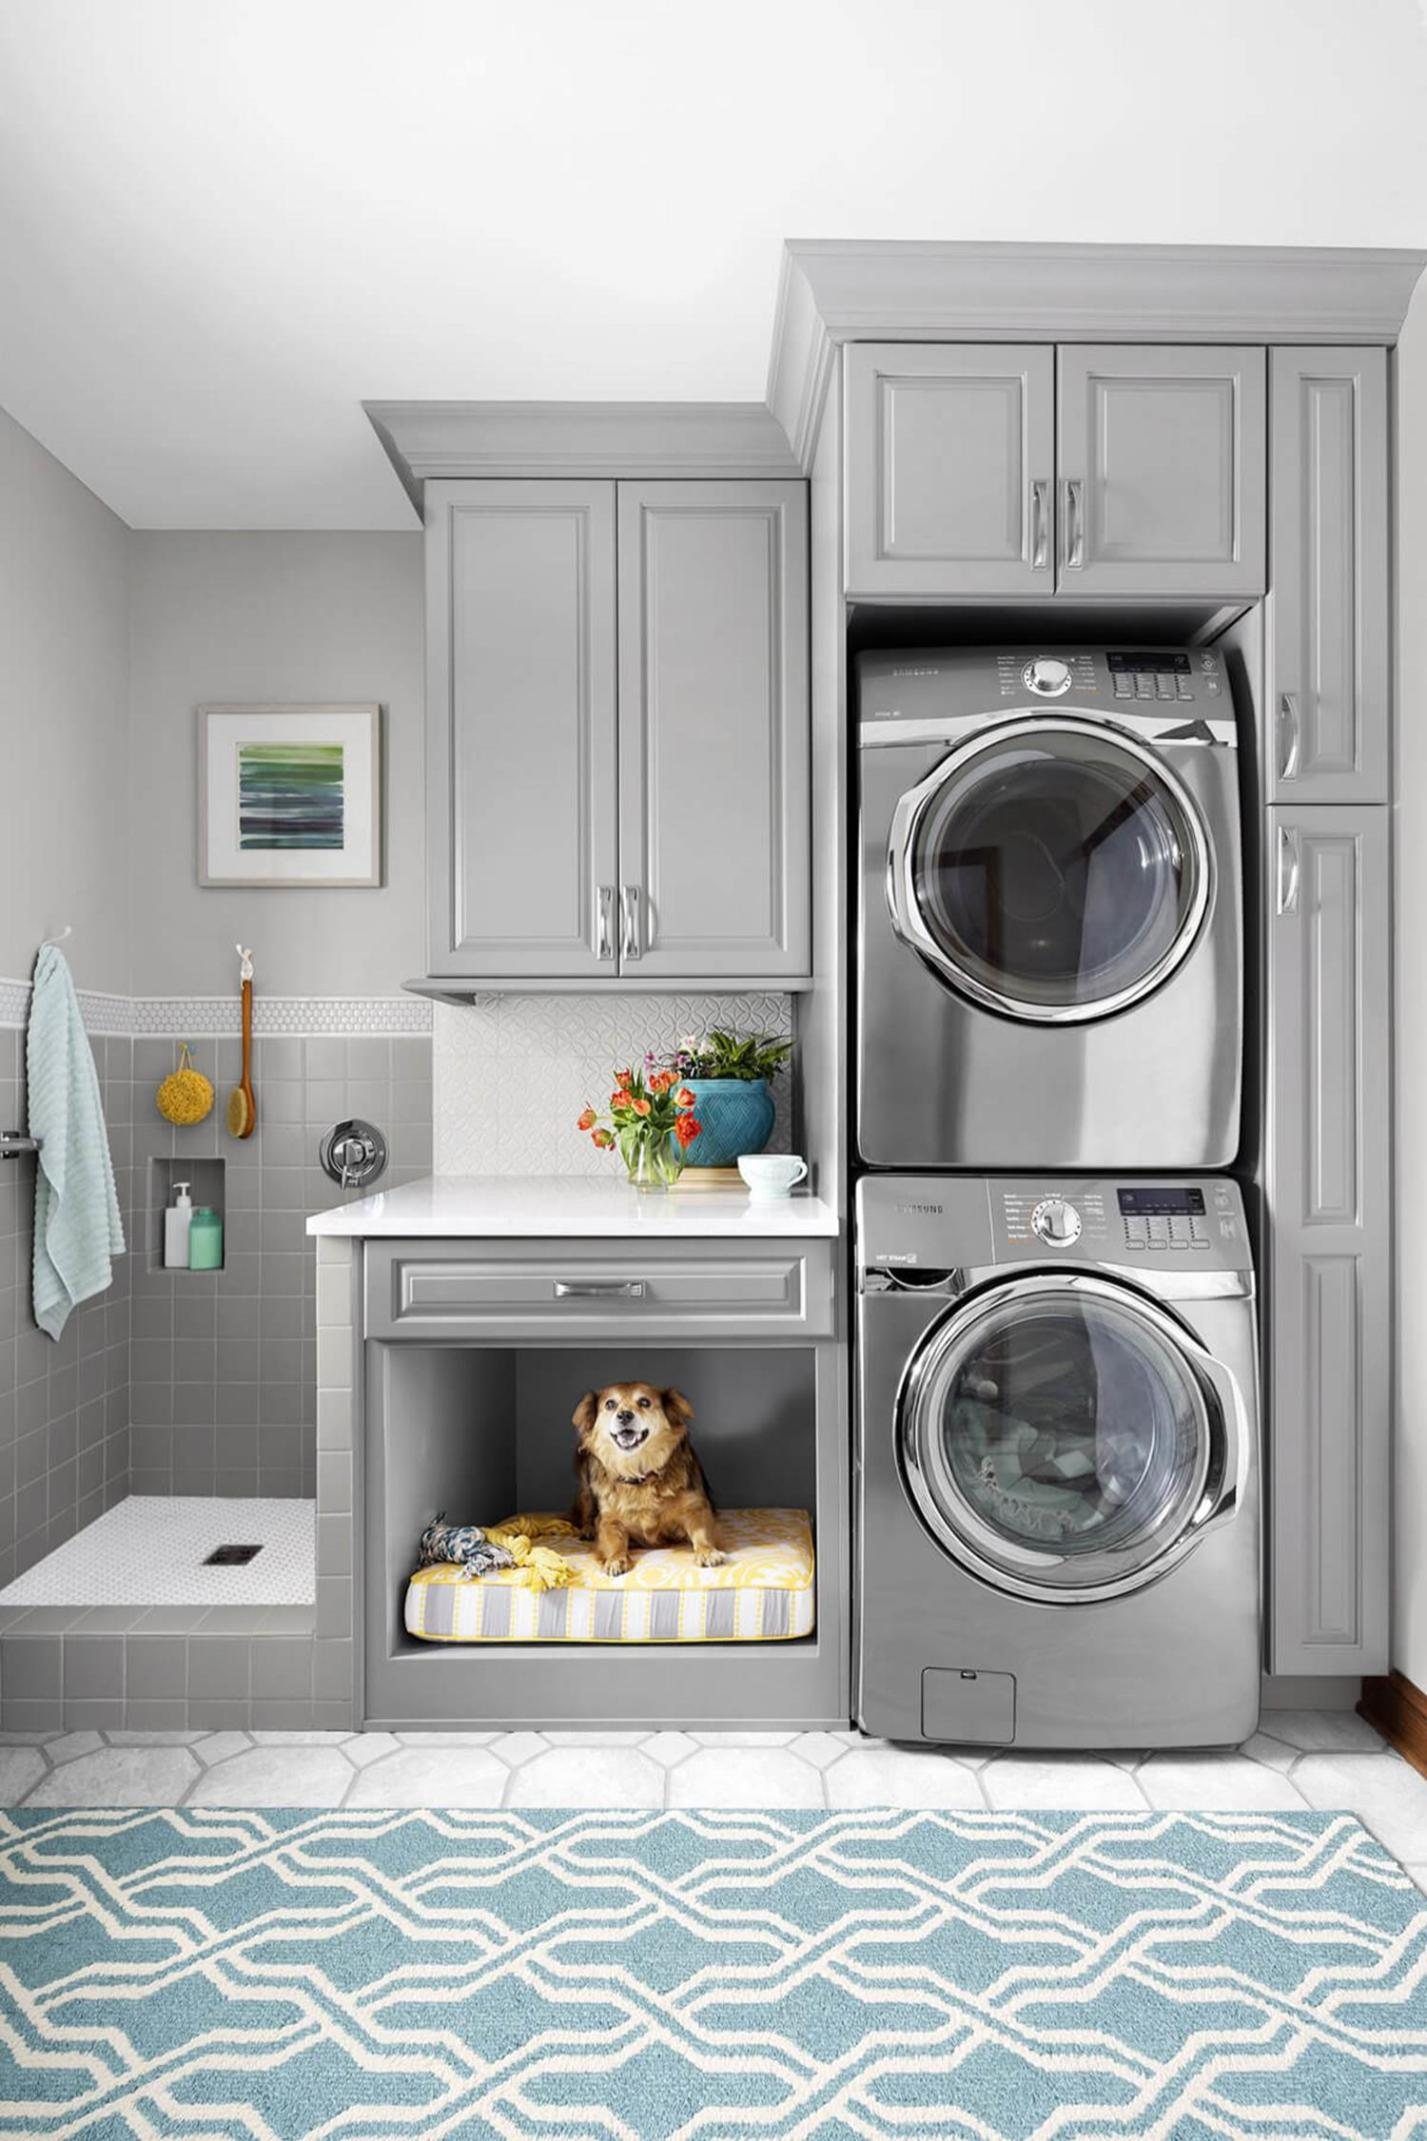 Small Laundry Room Design Ideas 19